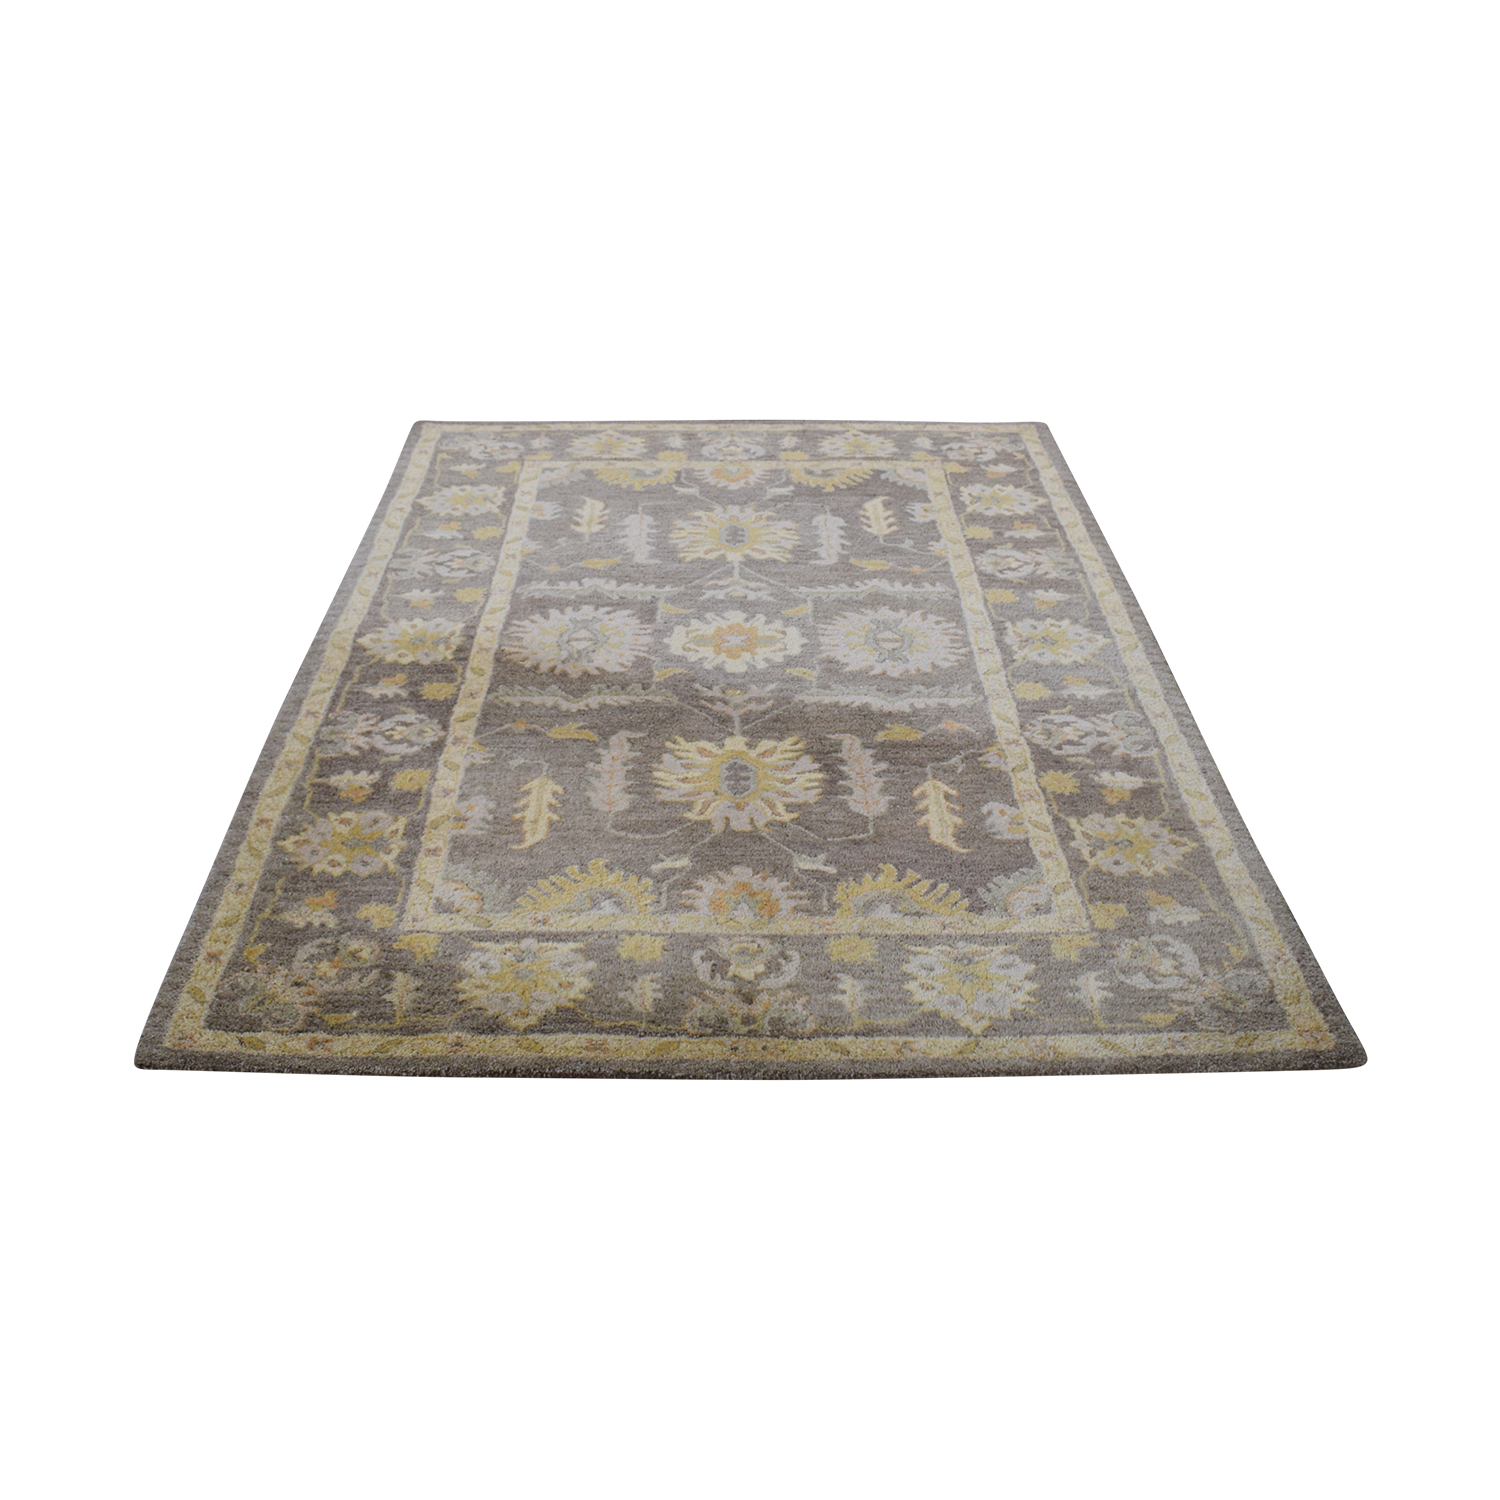 Pottery Barn Hastings Beige Persian Style Rug sale